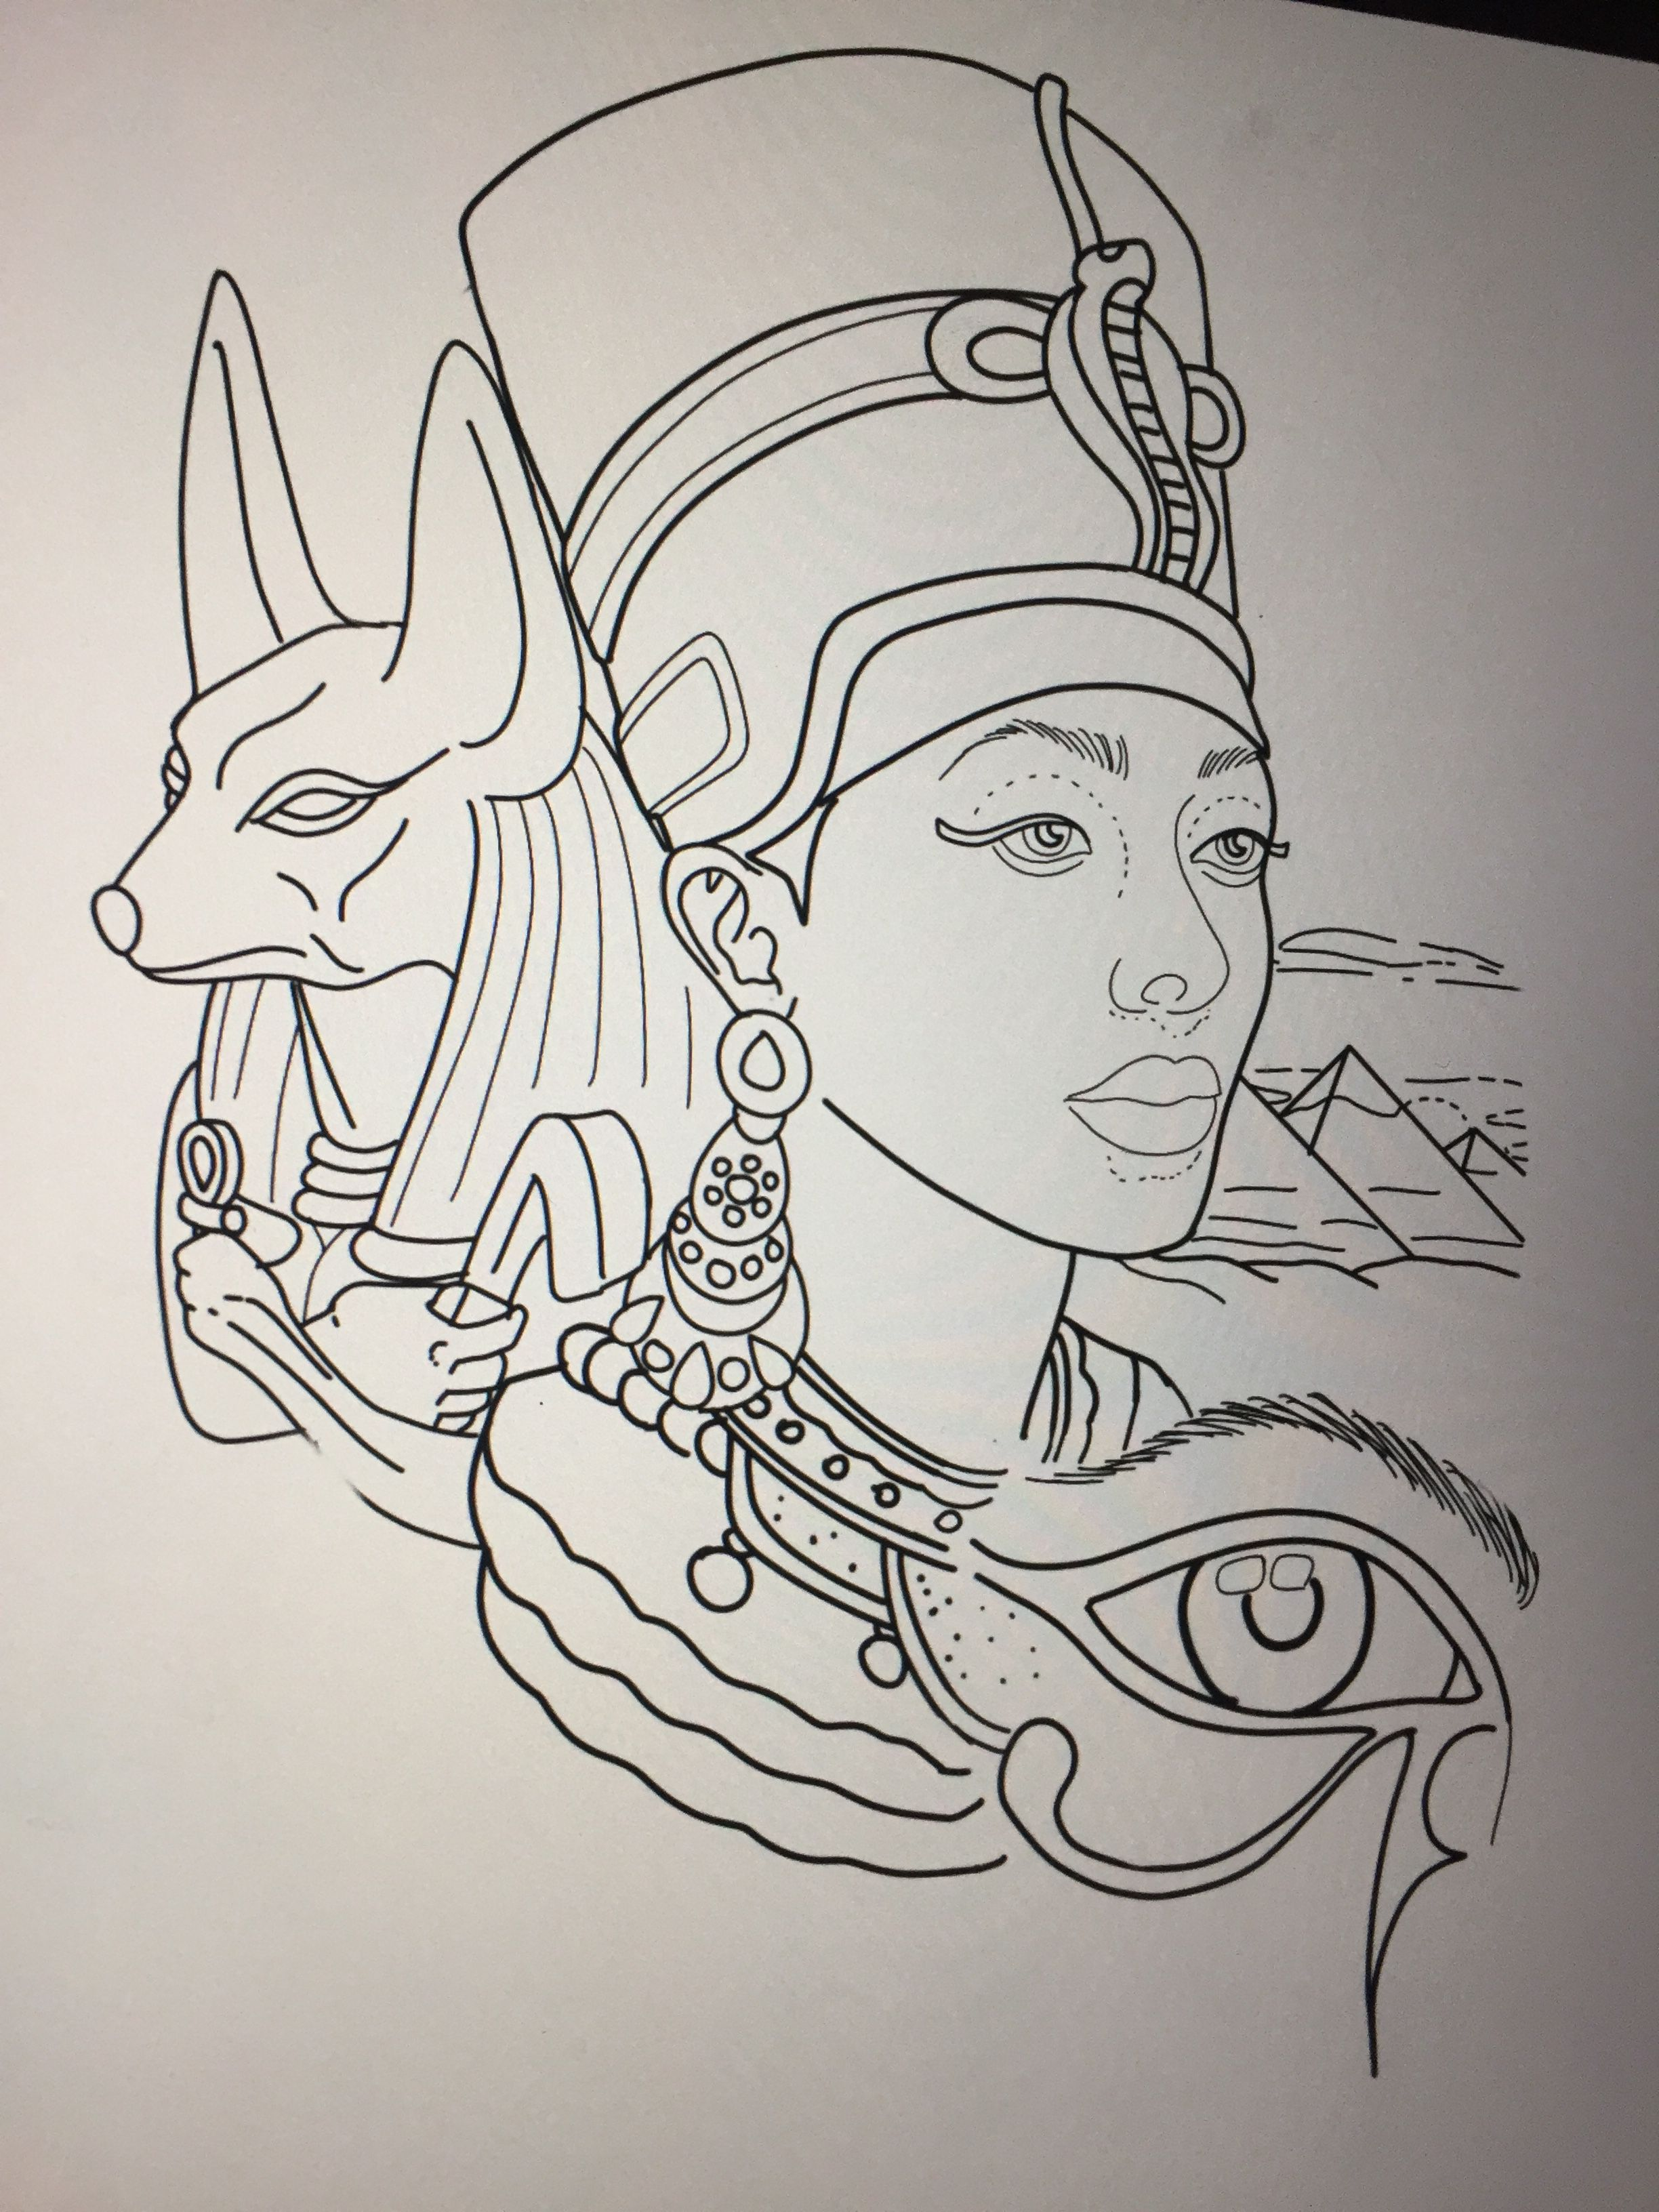 Egyptian Tattoo Design By Amanda Creek Tattoo Artist In Oak Harbor Washington Egyptian Drawings Egyptian Tattoo Nefertiti Tattoo